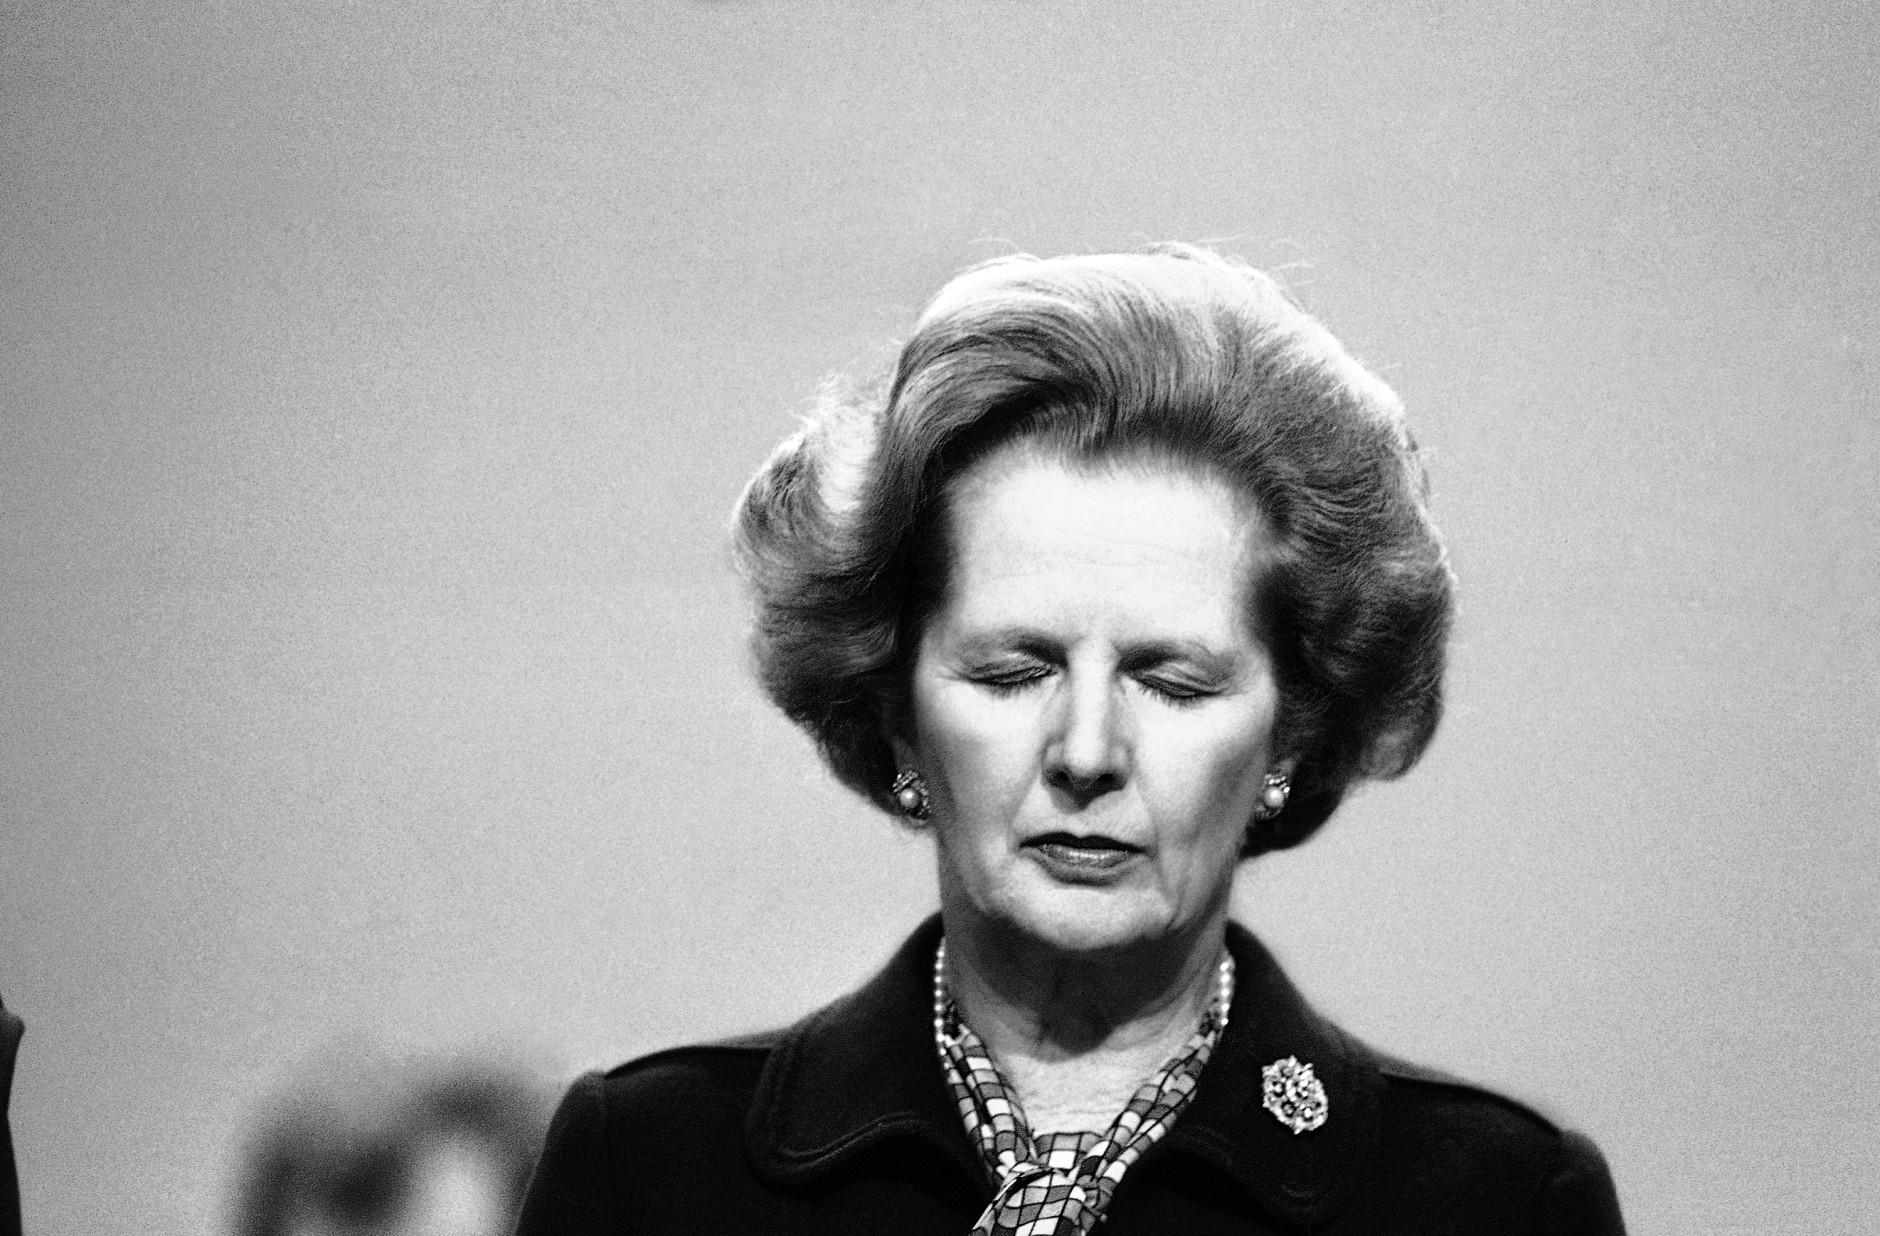 Britain?s Prime Minister Margaret Thatcher stands with her eyes closed during a moments silence for victims of the bomb blast at the Grand Hotel in Brighton, England, Oct. 12, 1984 at the Conservative Party Conference. Twenty-two members of Mrs. Thatcher?s government were staying at the Grand when the bomb went off. Premier Thatcher was uninjured in the blast however windows in her suite we blown out and her bathroom badly damaged. (AP Photo/Peter Kemp)